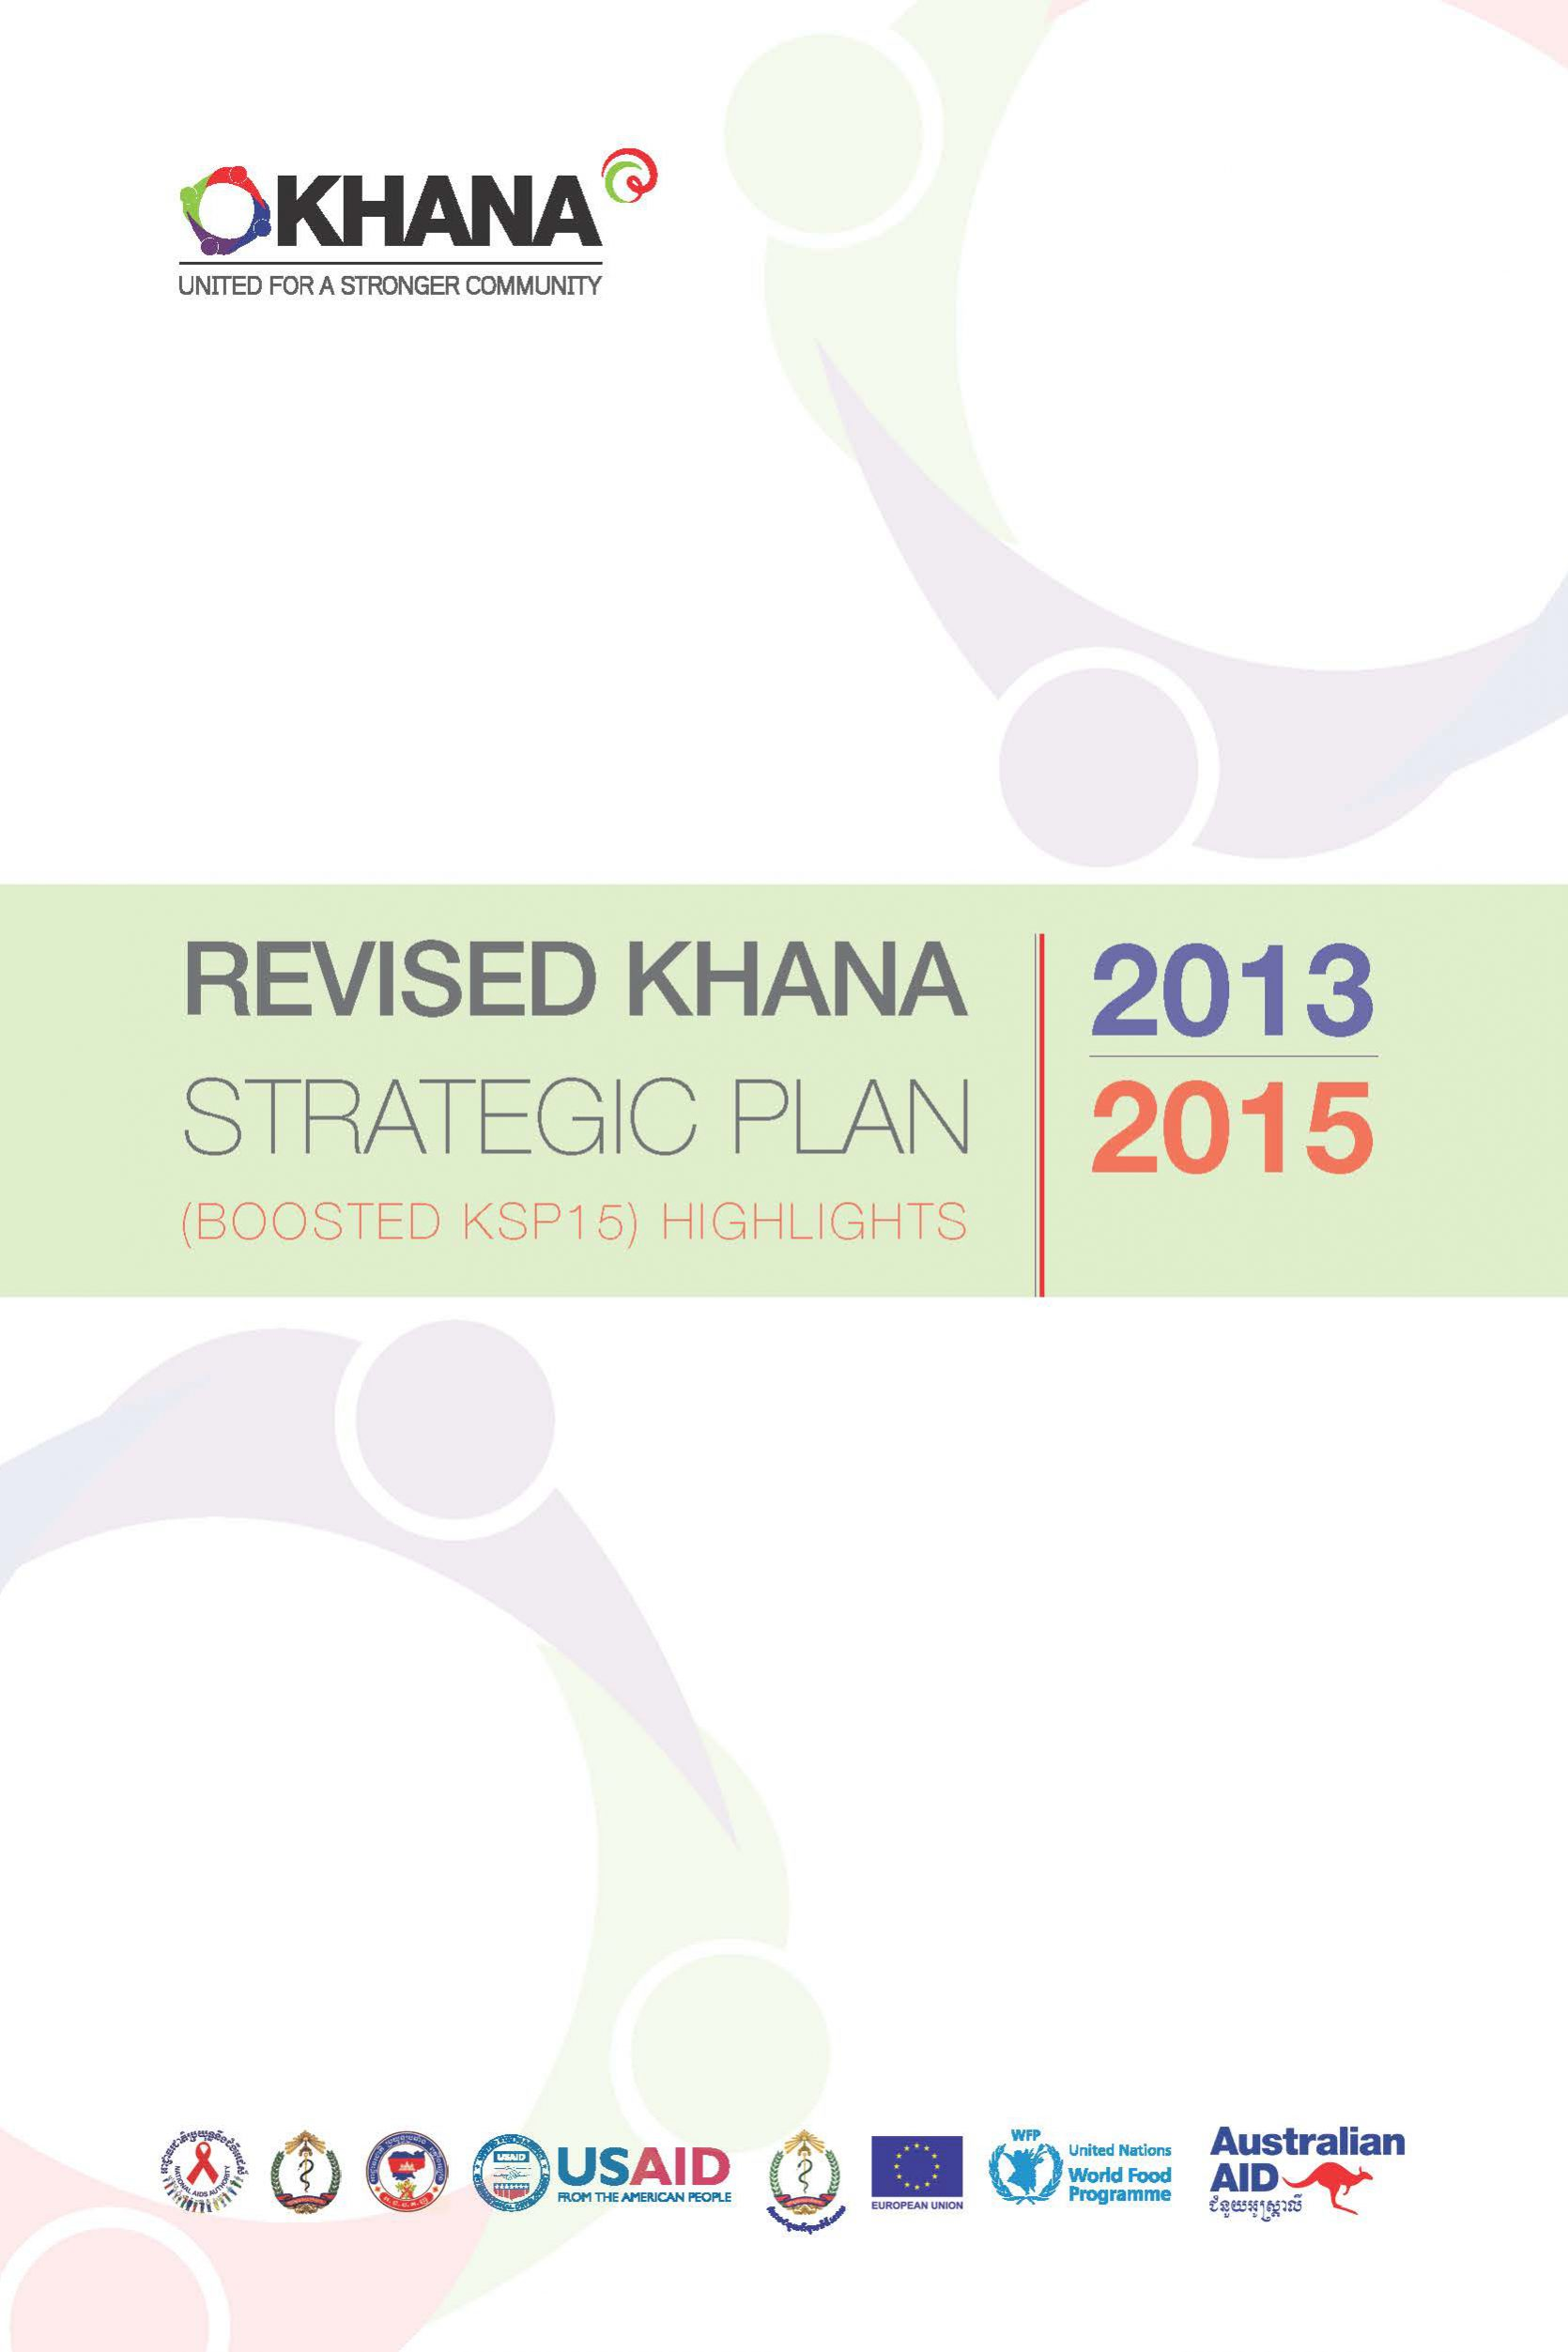 Revised KHANA Strategic Plan